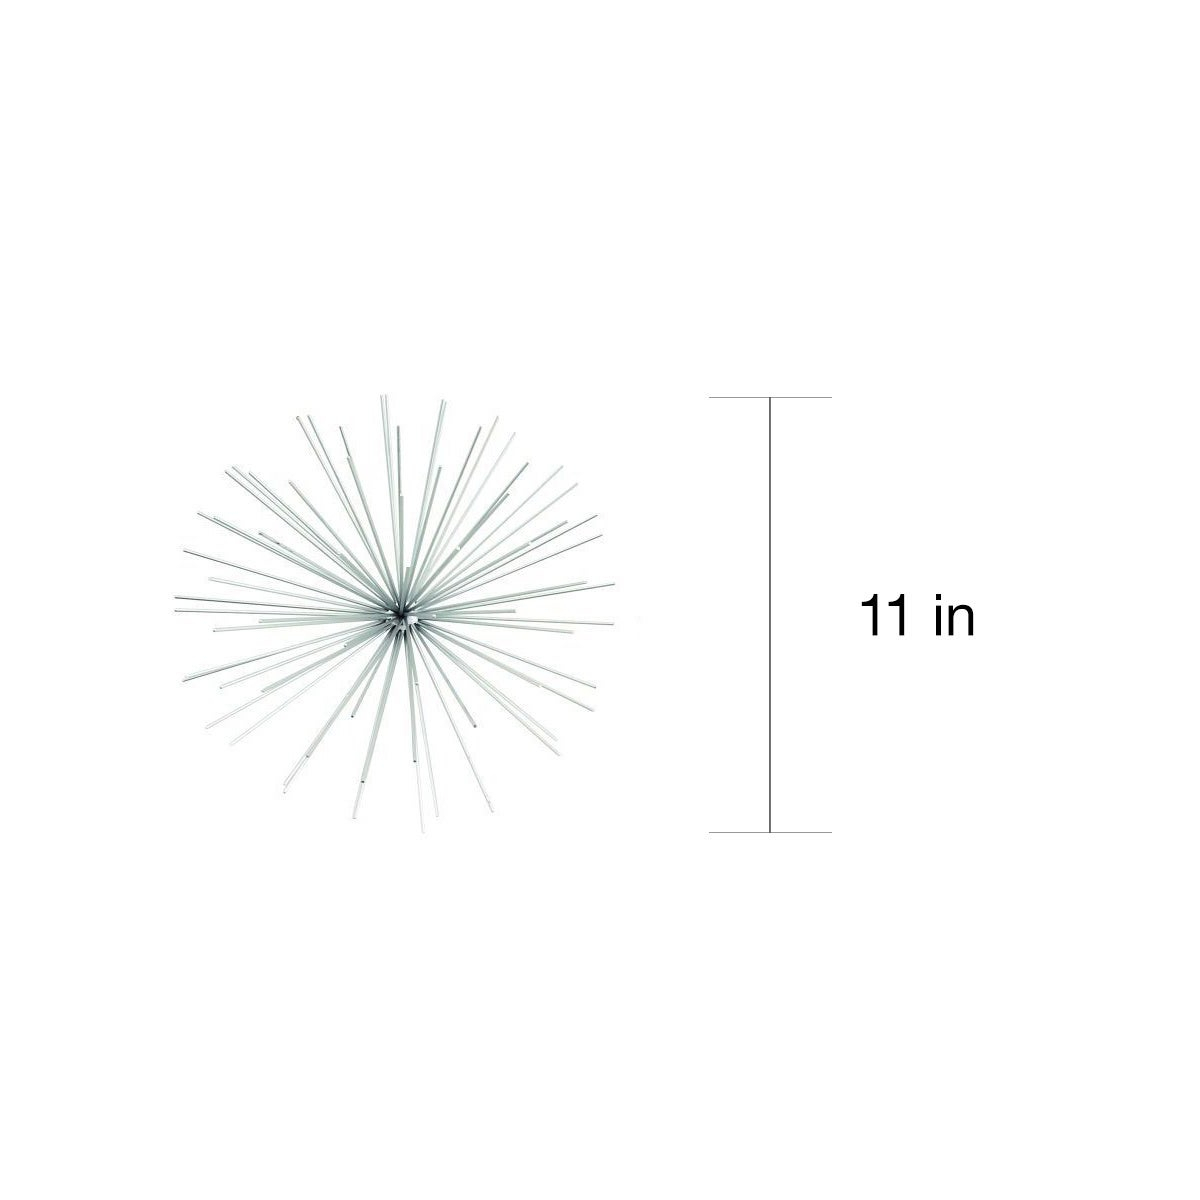 """Contemporary Style 3D Round Silver Metal Starburst Wall Decor Sculptures  Set Of 3 - 6"""", 9"""", 11"""" regarding Set Of 3 Contemporary 6, 9, And 11 Inch Gold Tin Starburst Sculptures (Image 8 of 30)"""